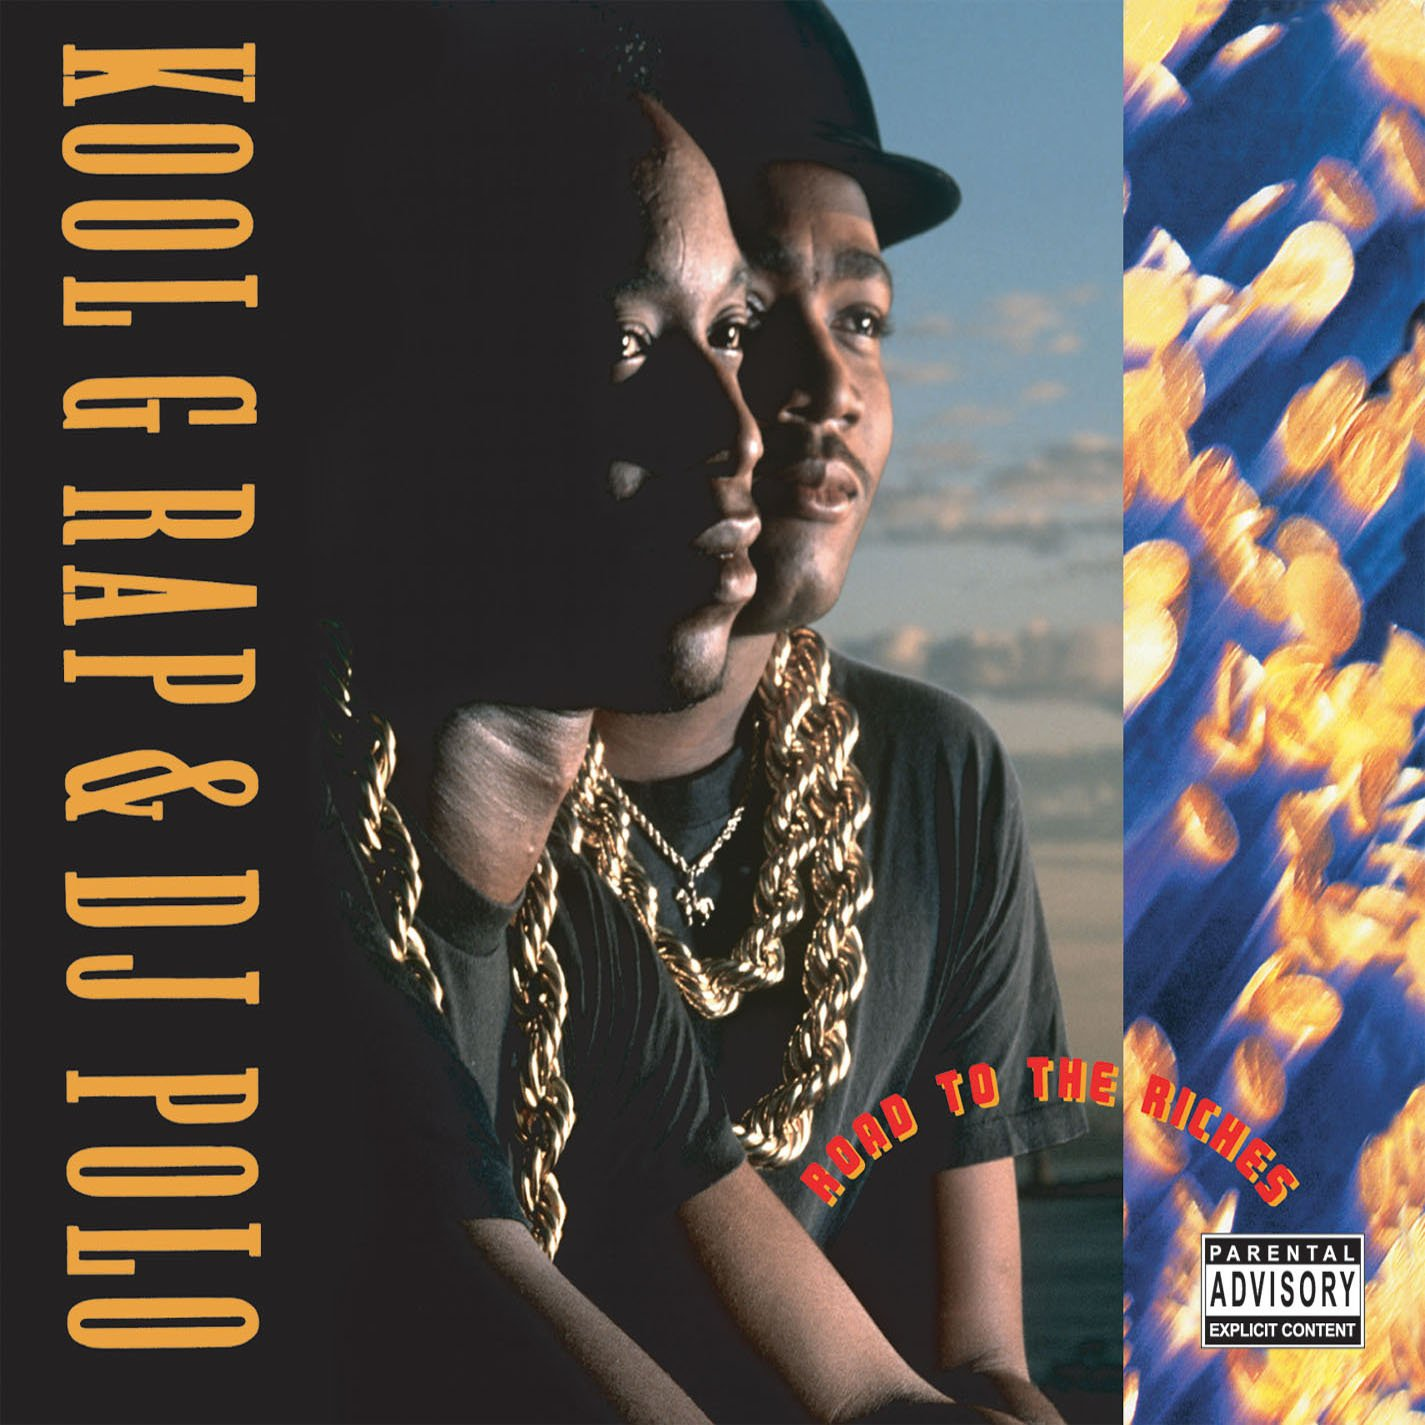 Kool G Rap & DJ Polo – Road to the Riches